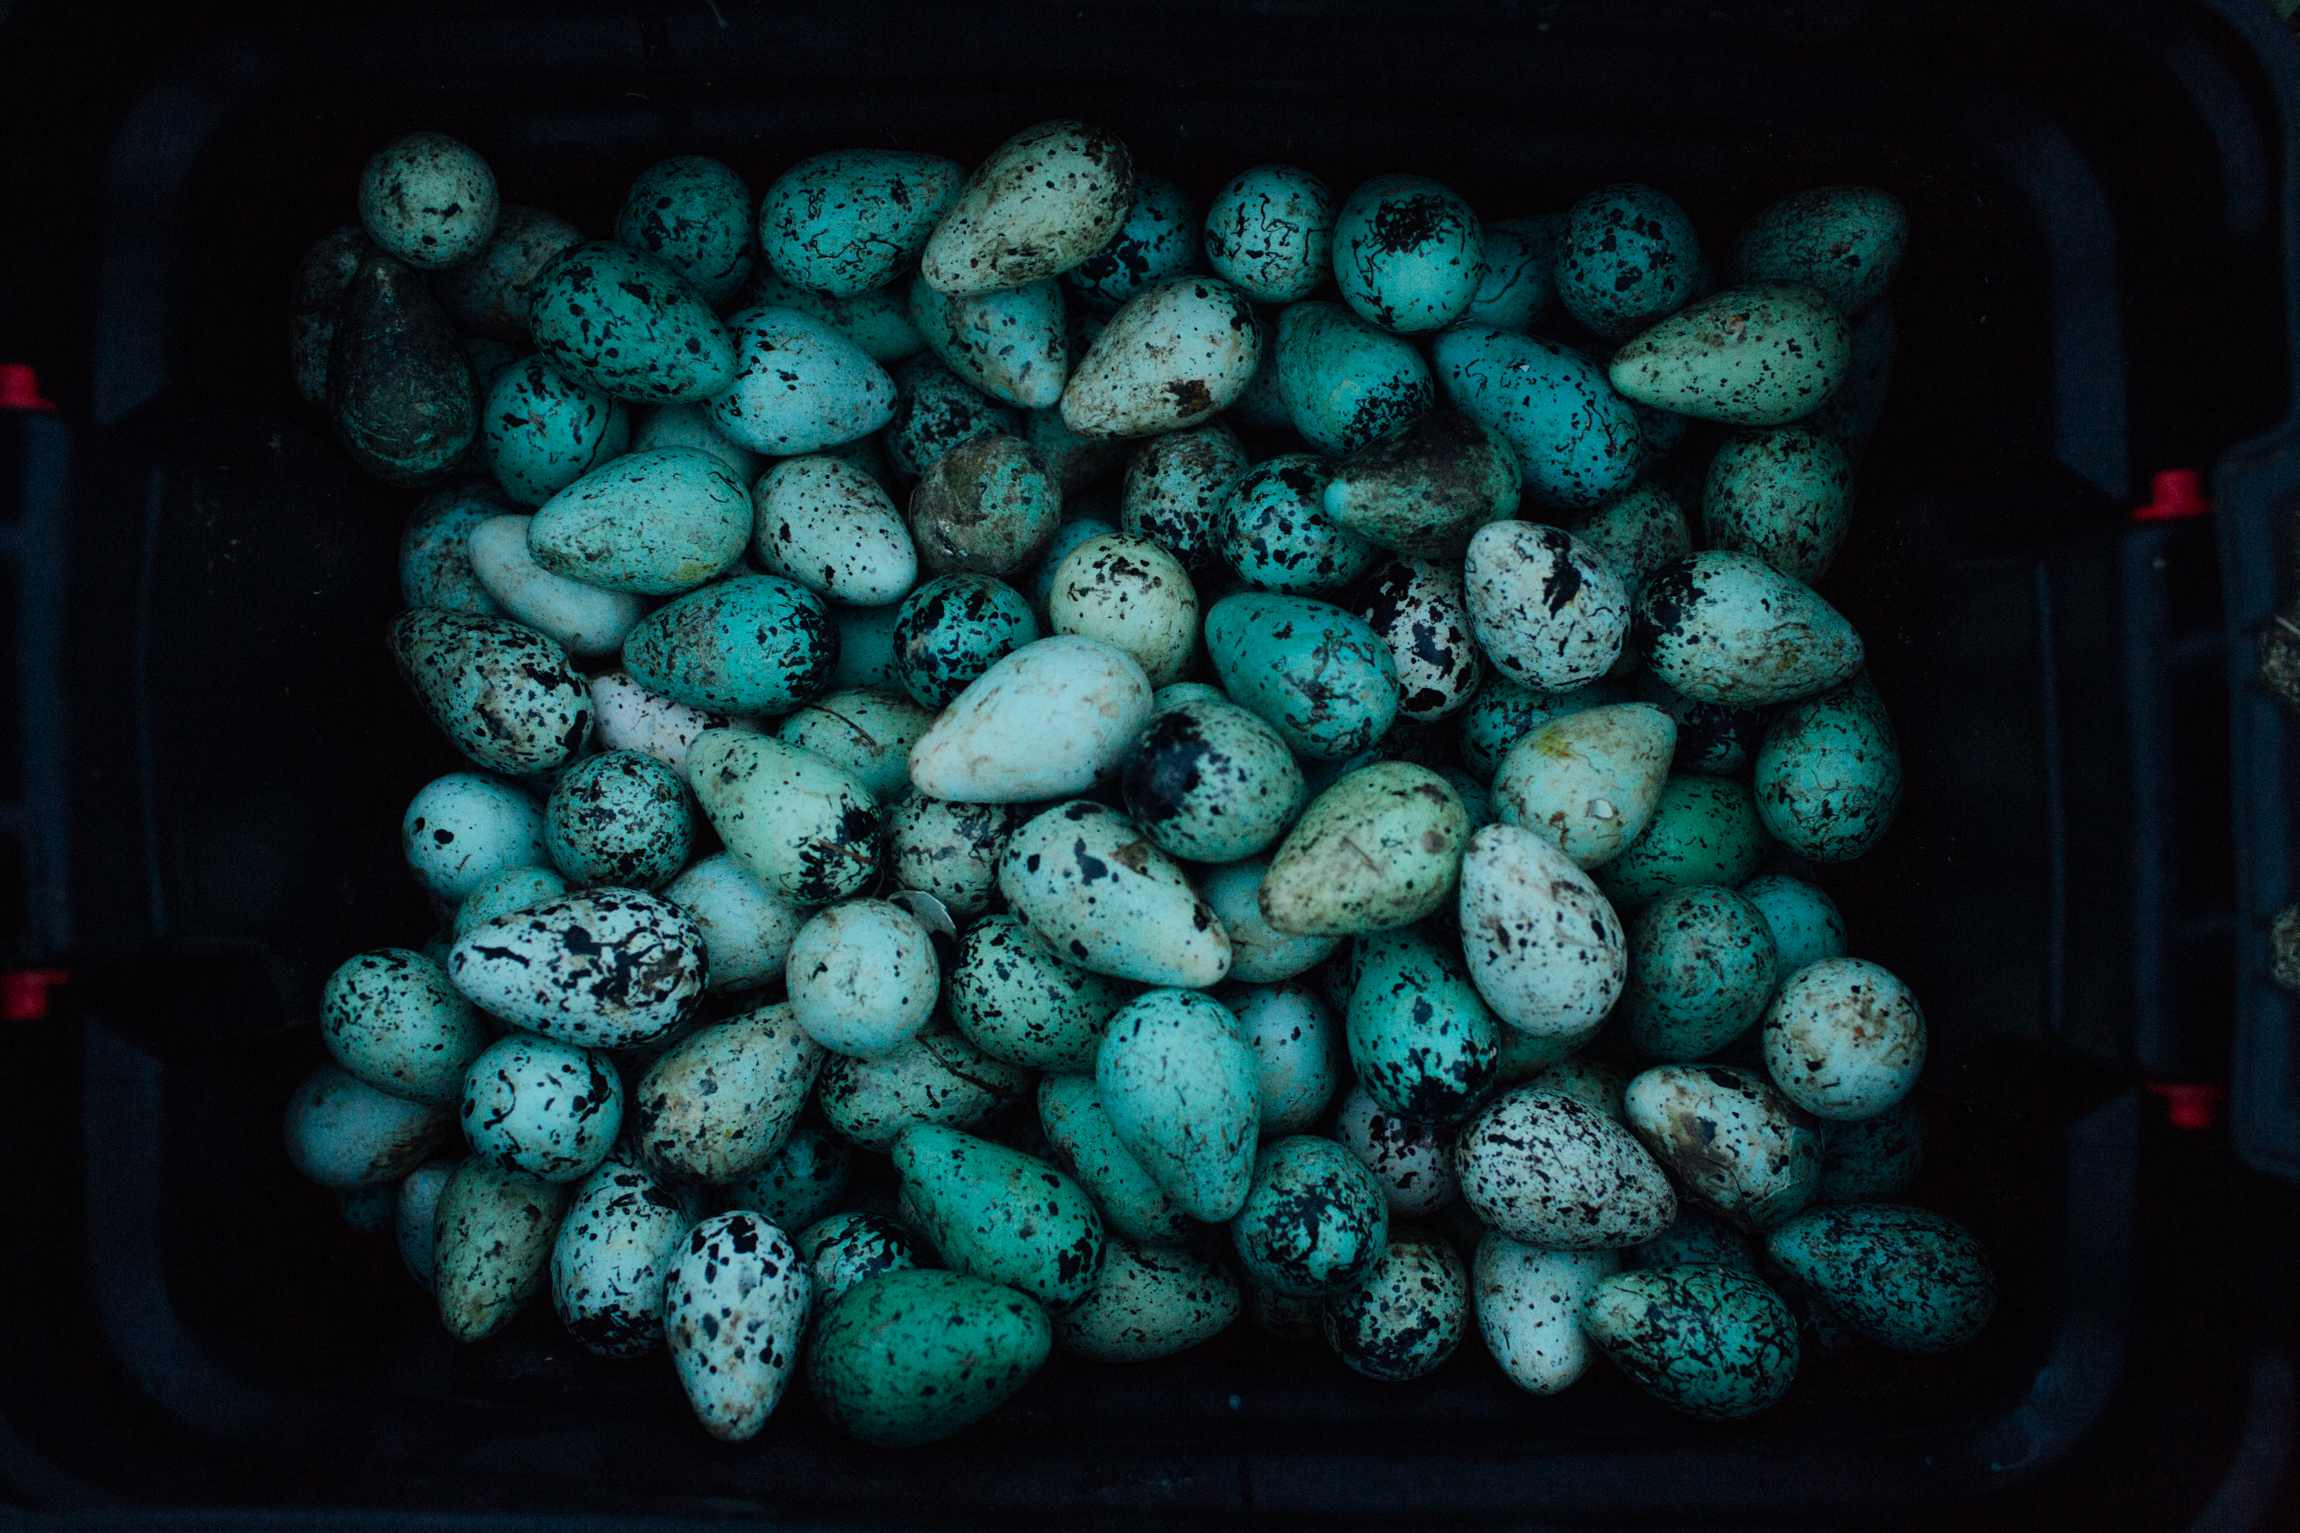 Common Murr eggs collected from cliff sides on St. Lawrence island. Murr eggs provide subsistence food for families in the villages of Savoonga and Gambell on the island.